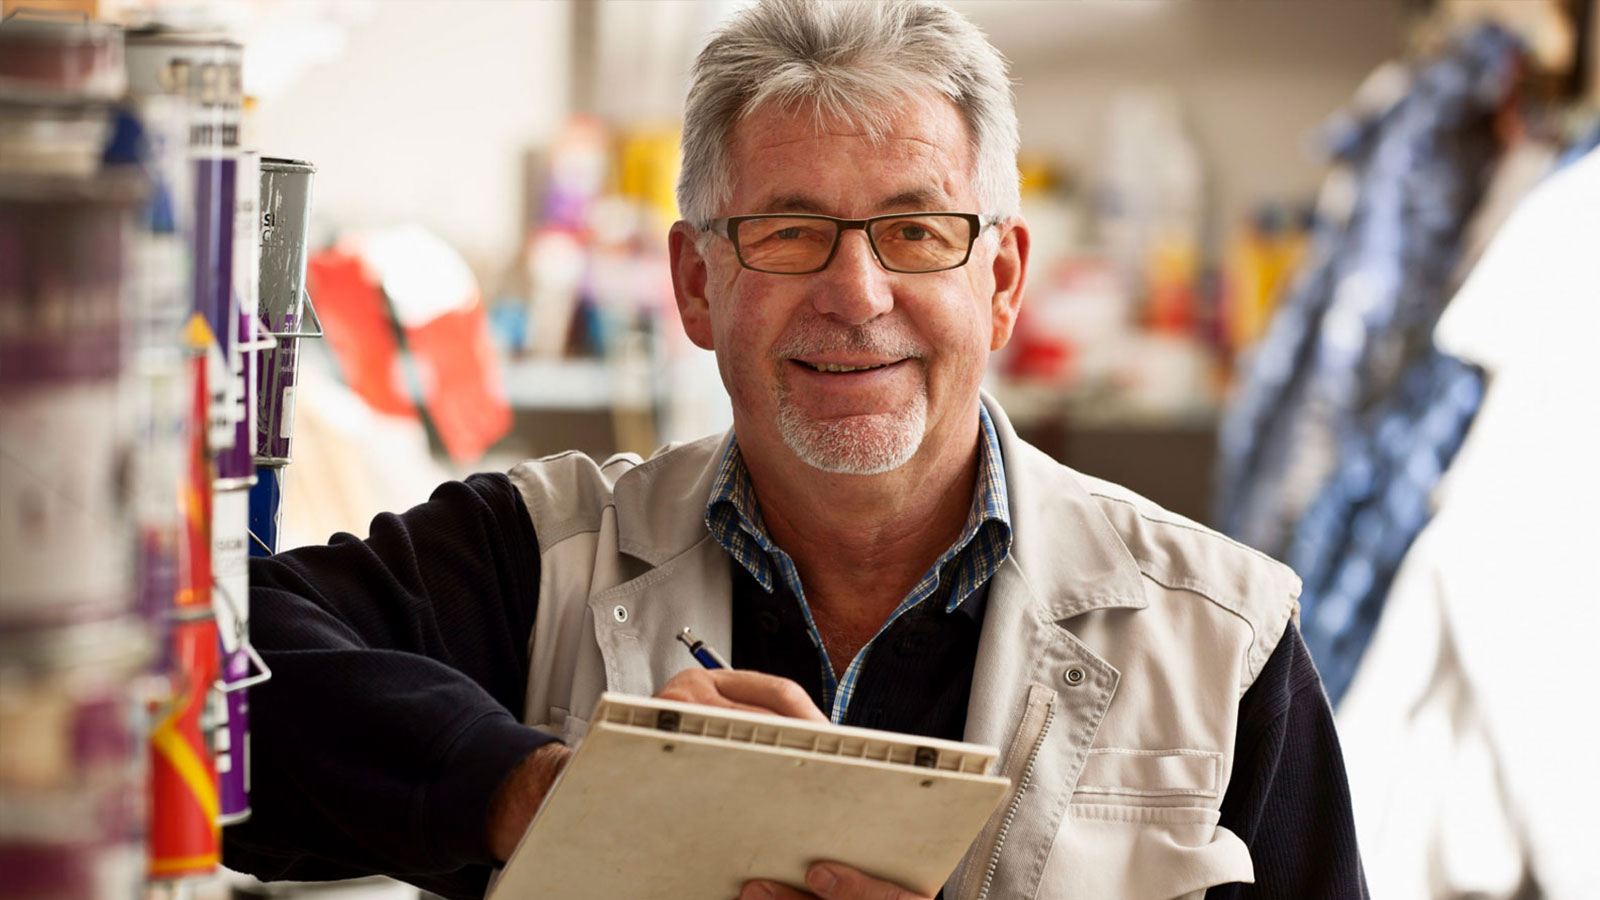 8 pieces of advice to help you retire when you want, according to people who have done it